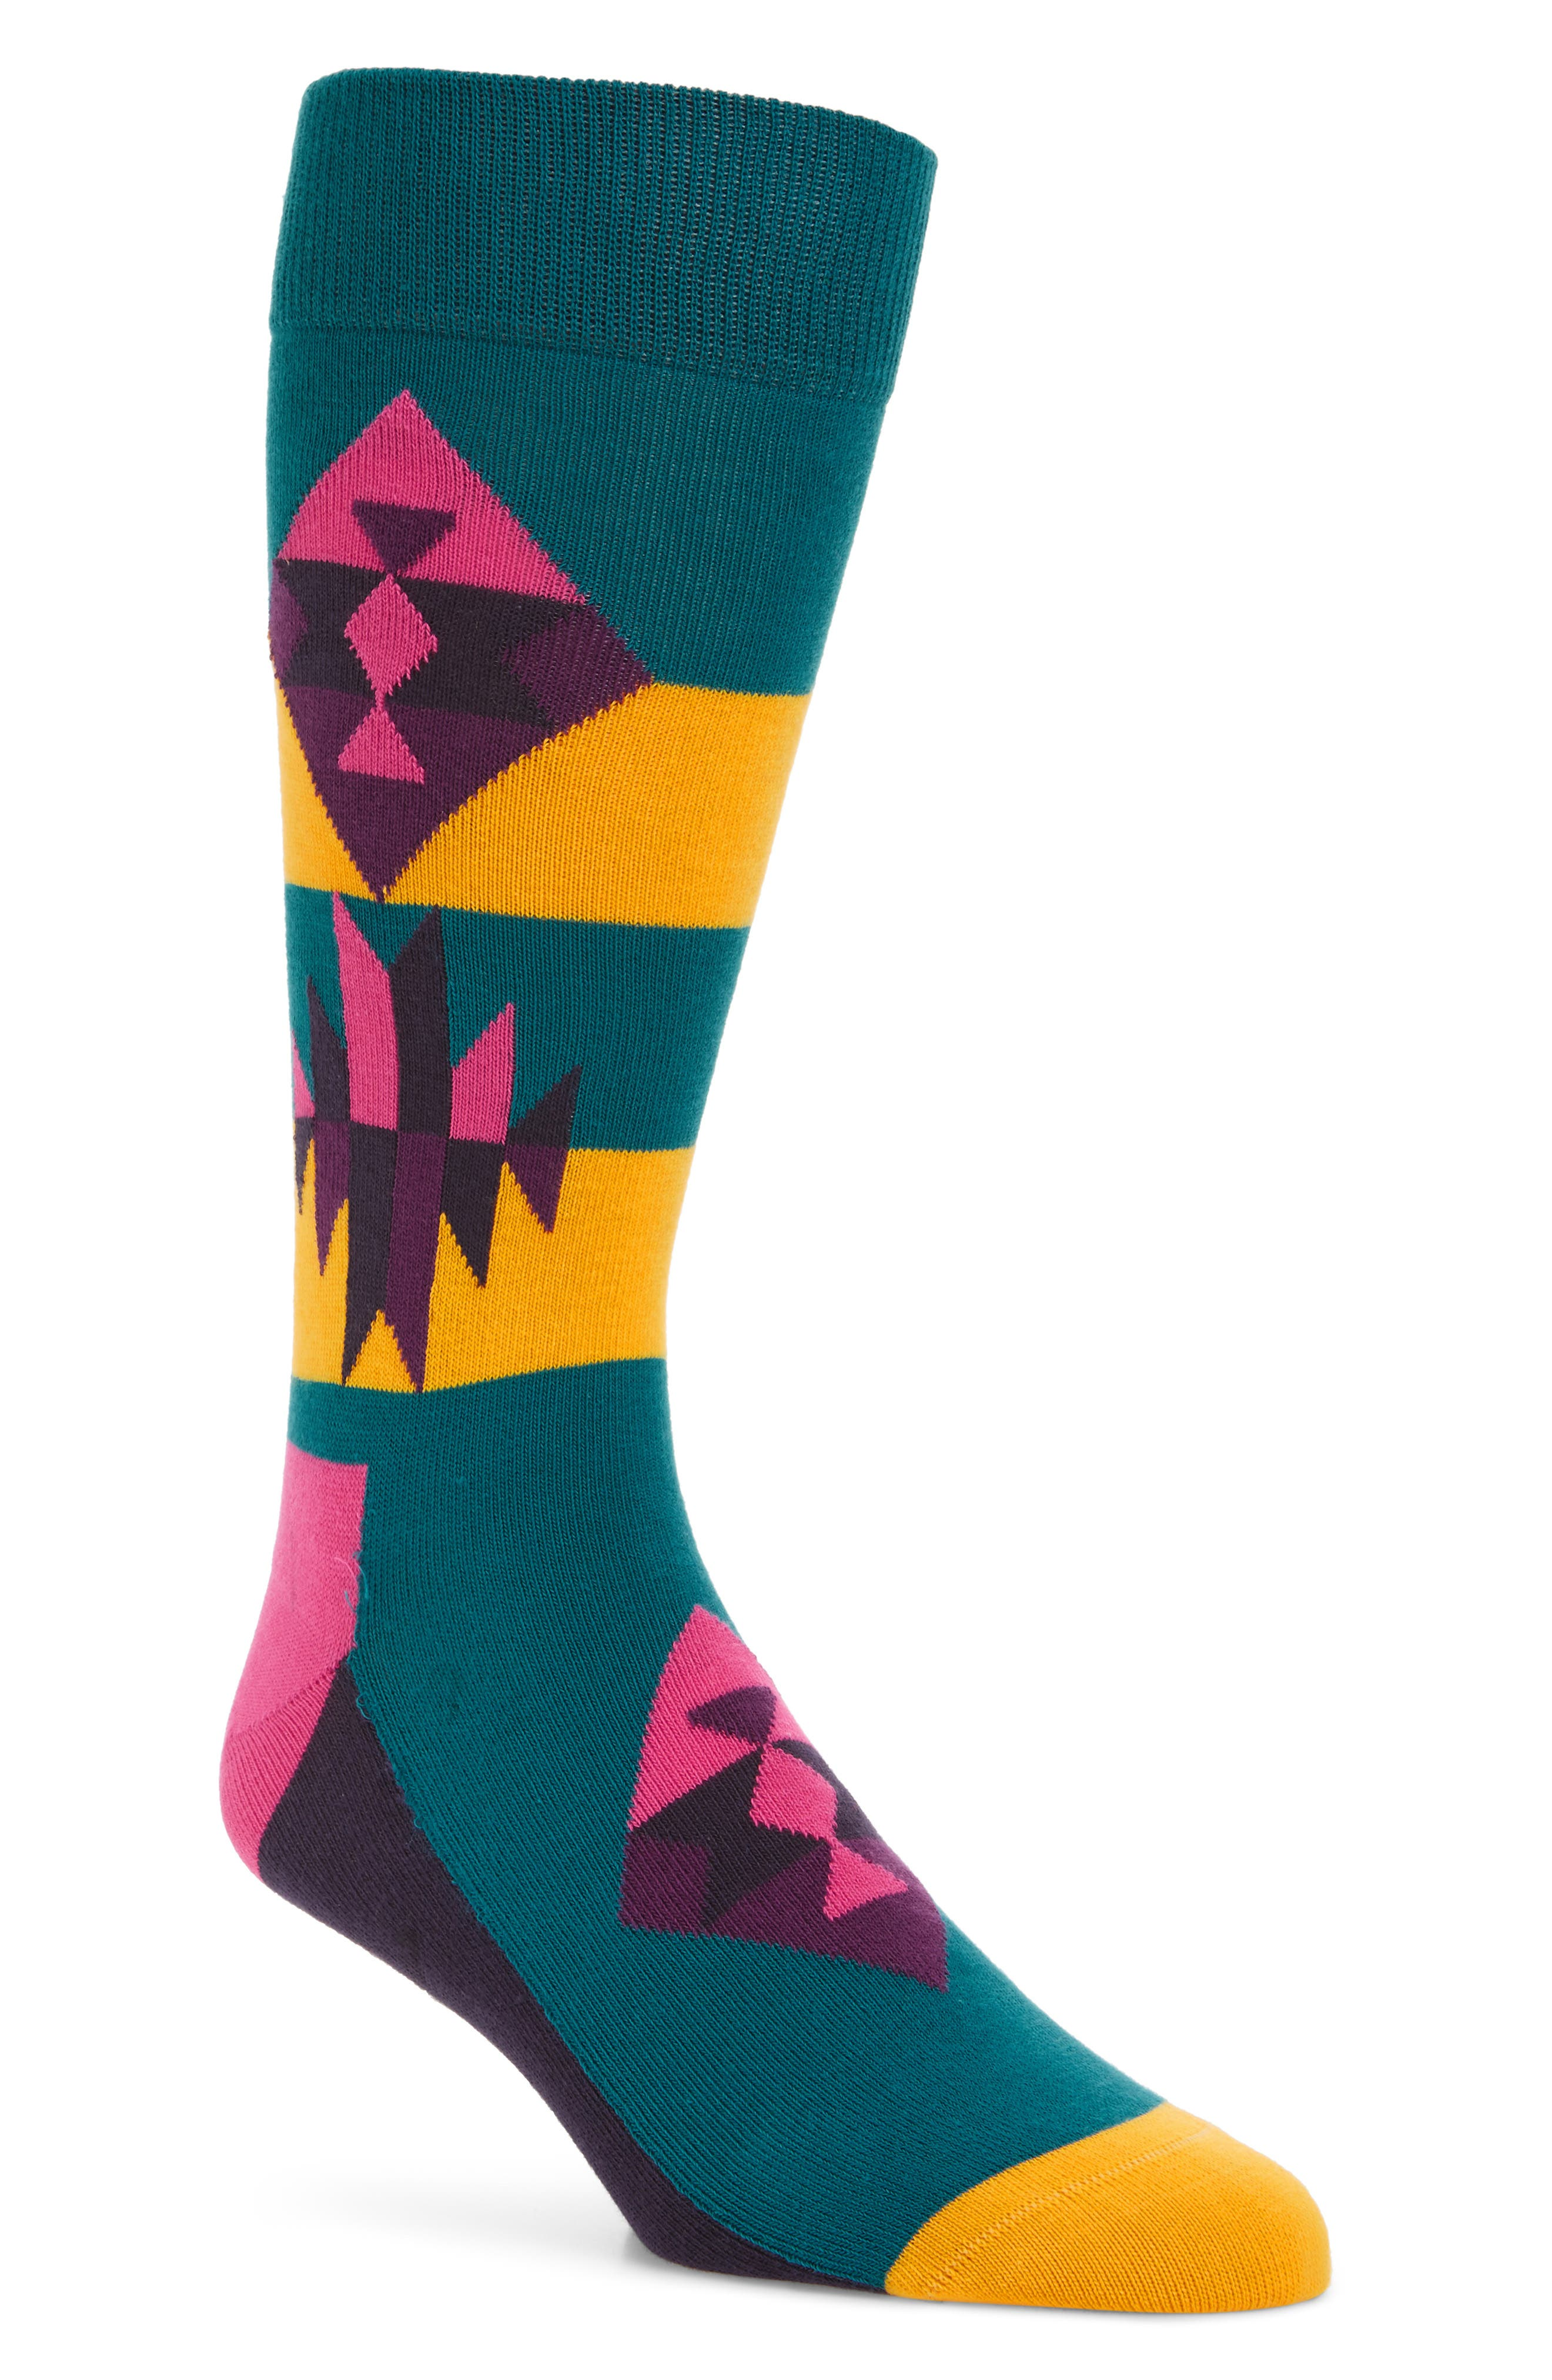 Inca Pattern Socks,                         Main,                         color,